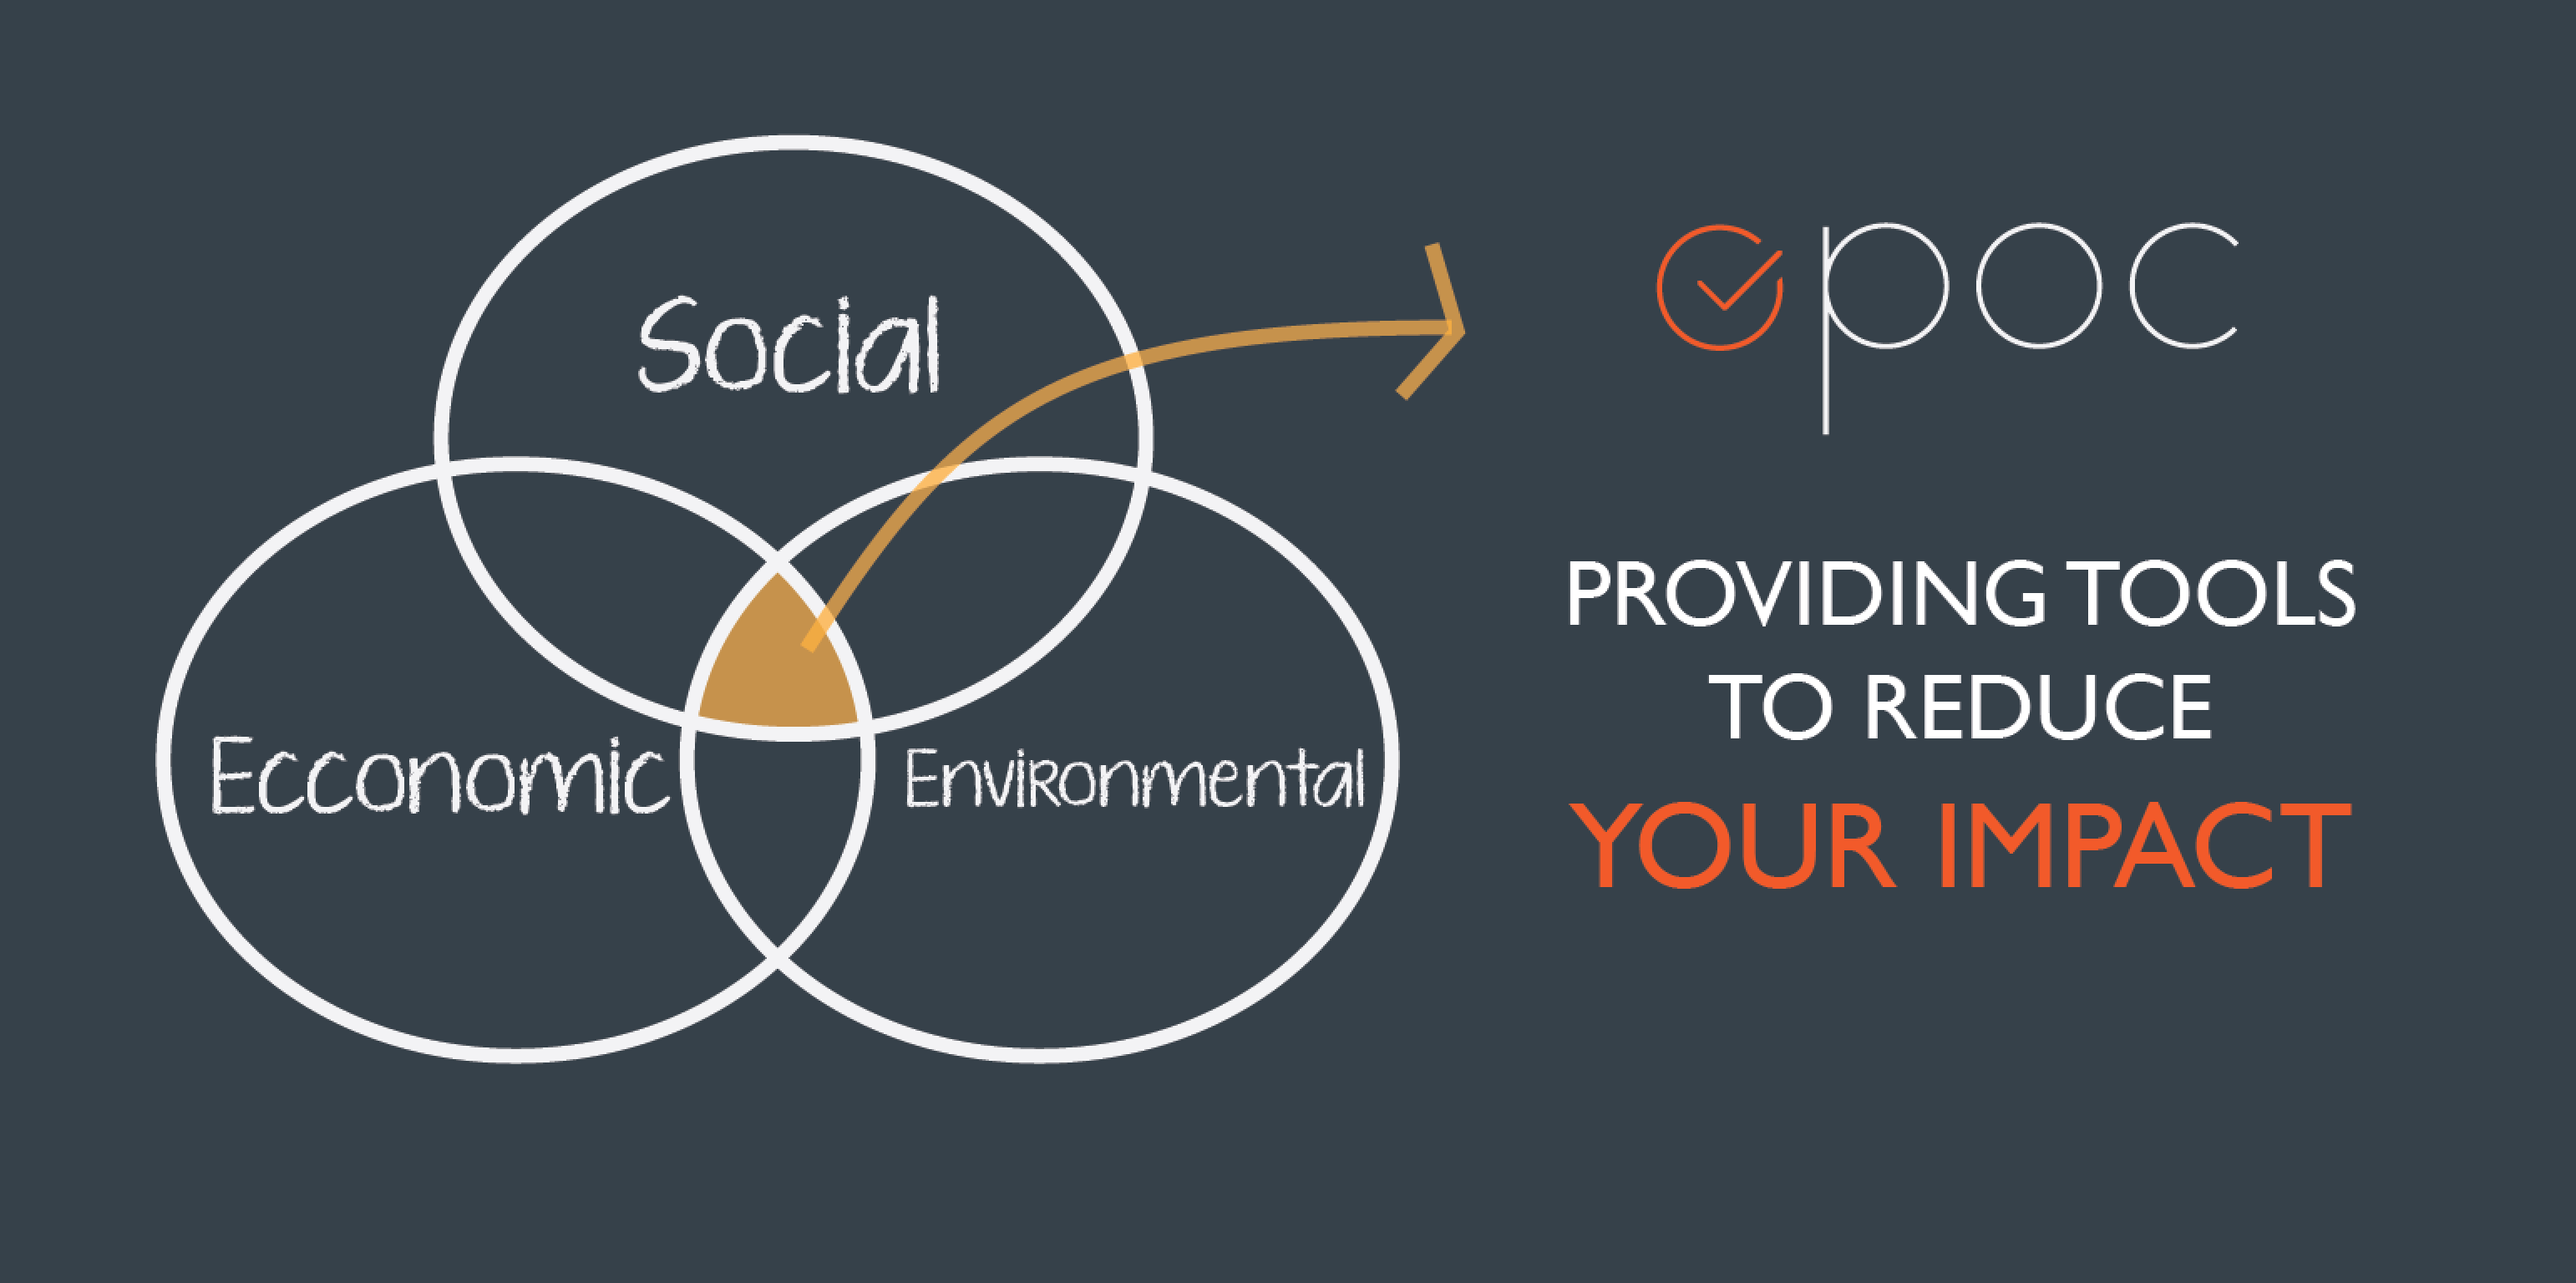 See how OPOC is helping its customers improve their Social, Economic and Environmental Impact